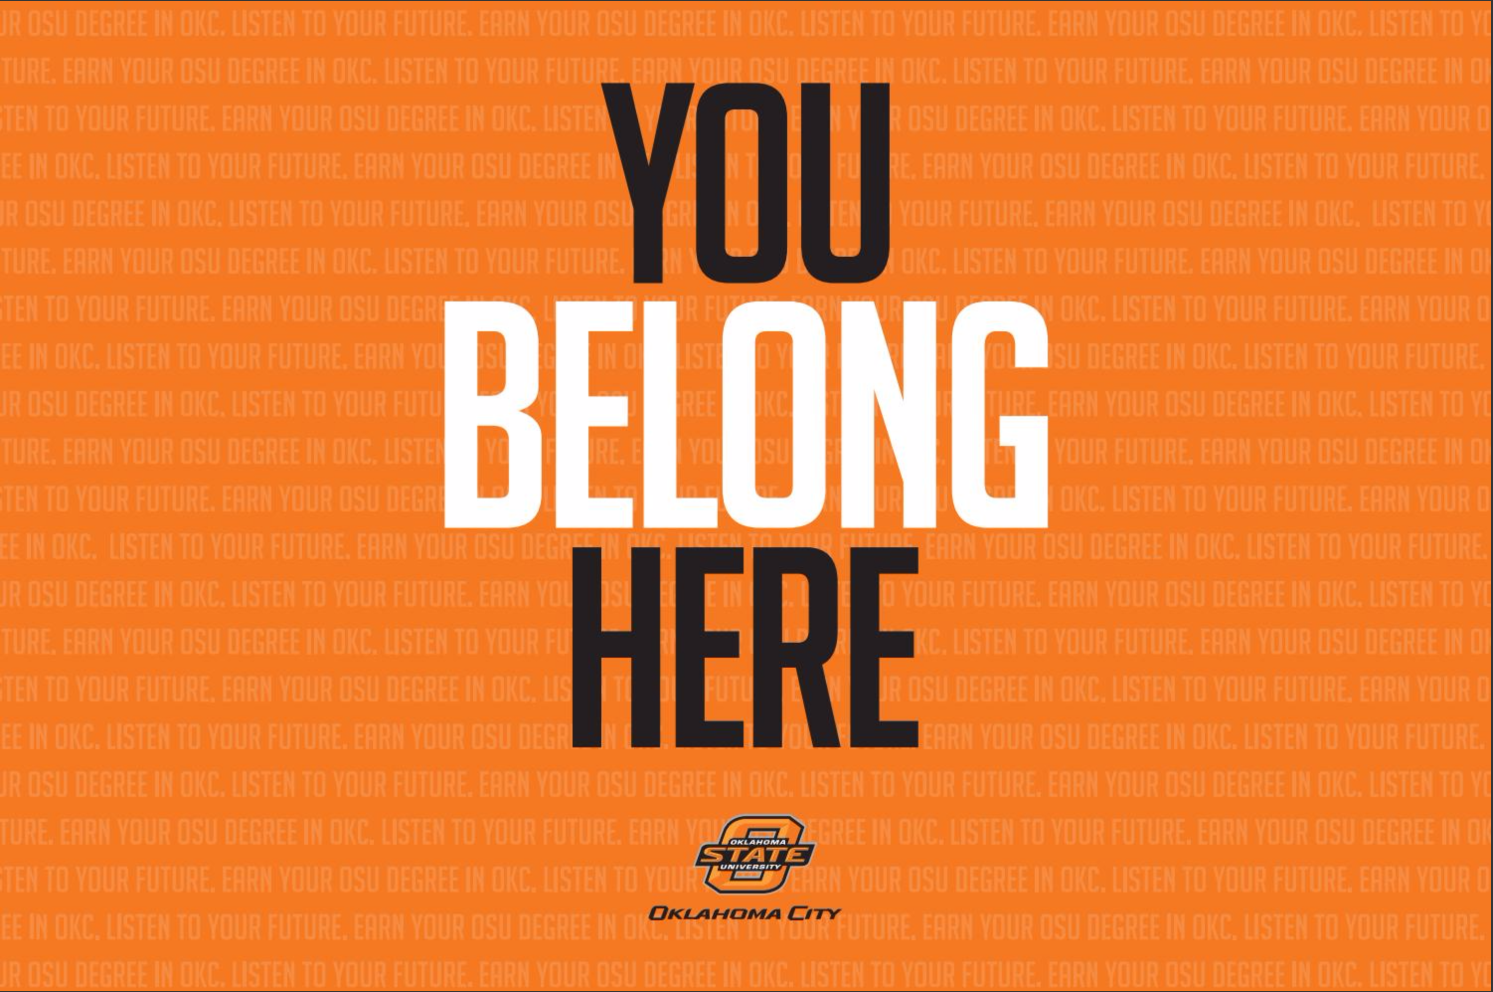 You belong here at OSU-OKC!